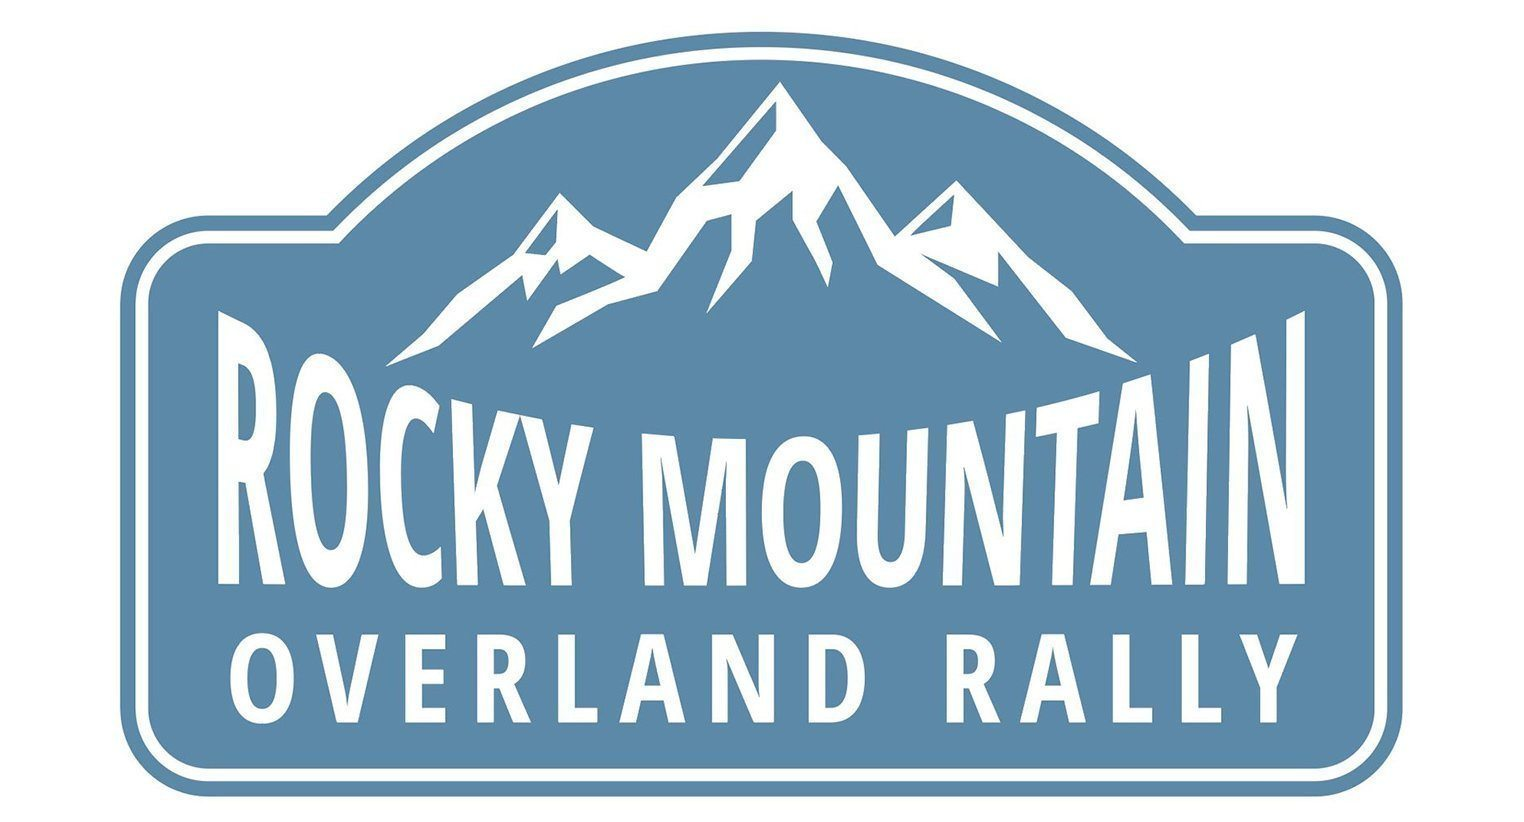 Rocky Mountain Overland Rally